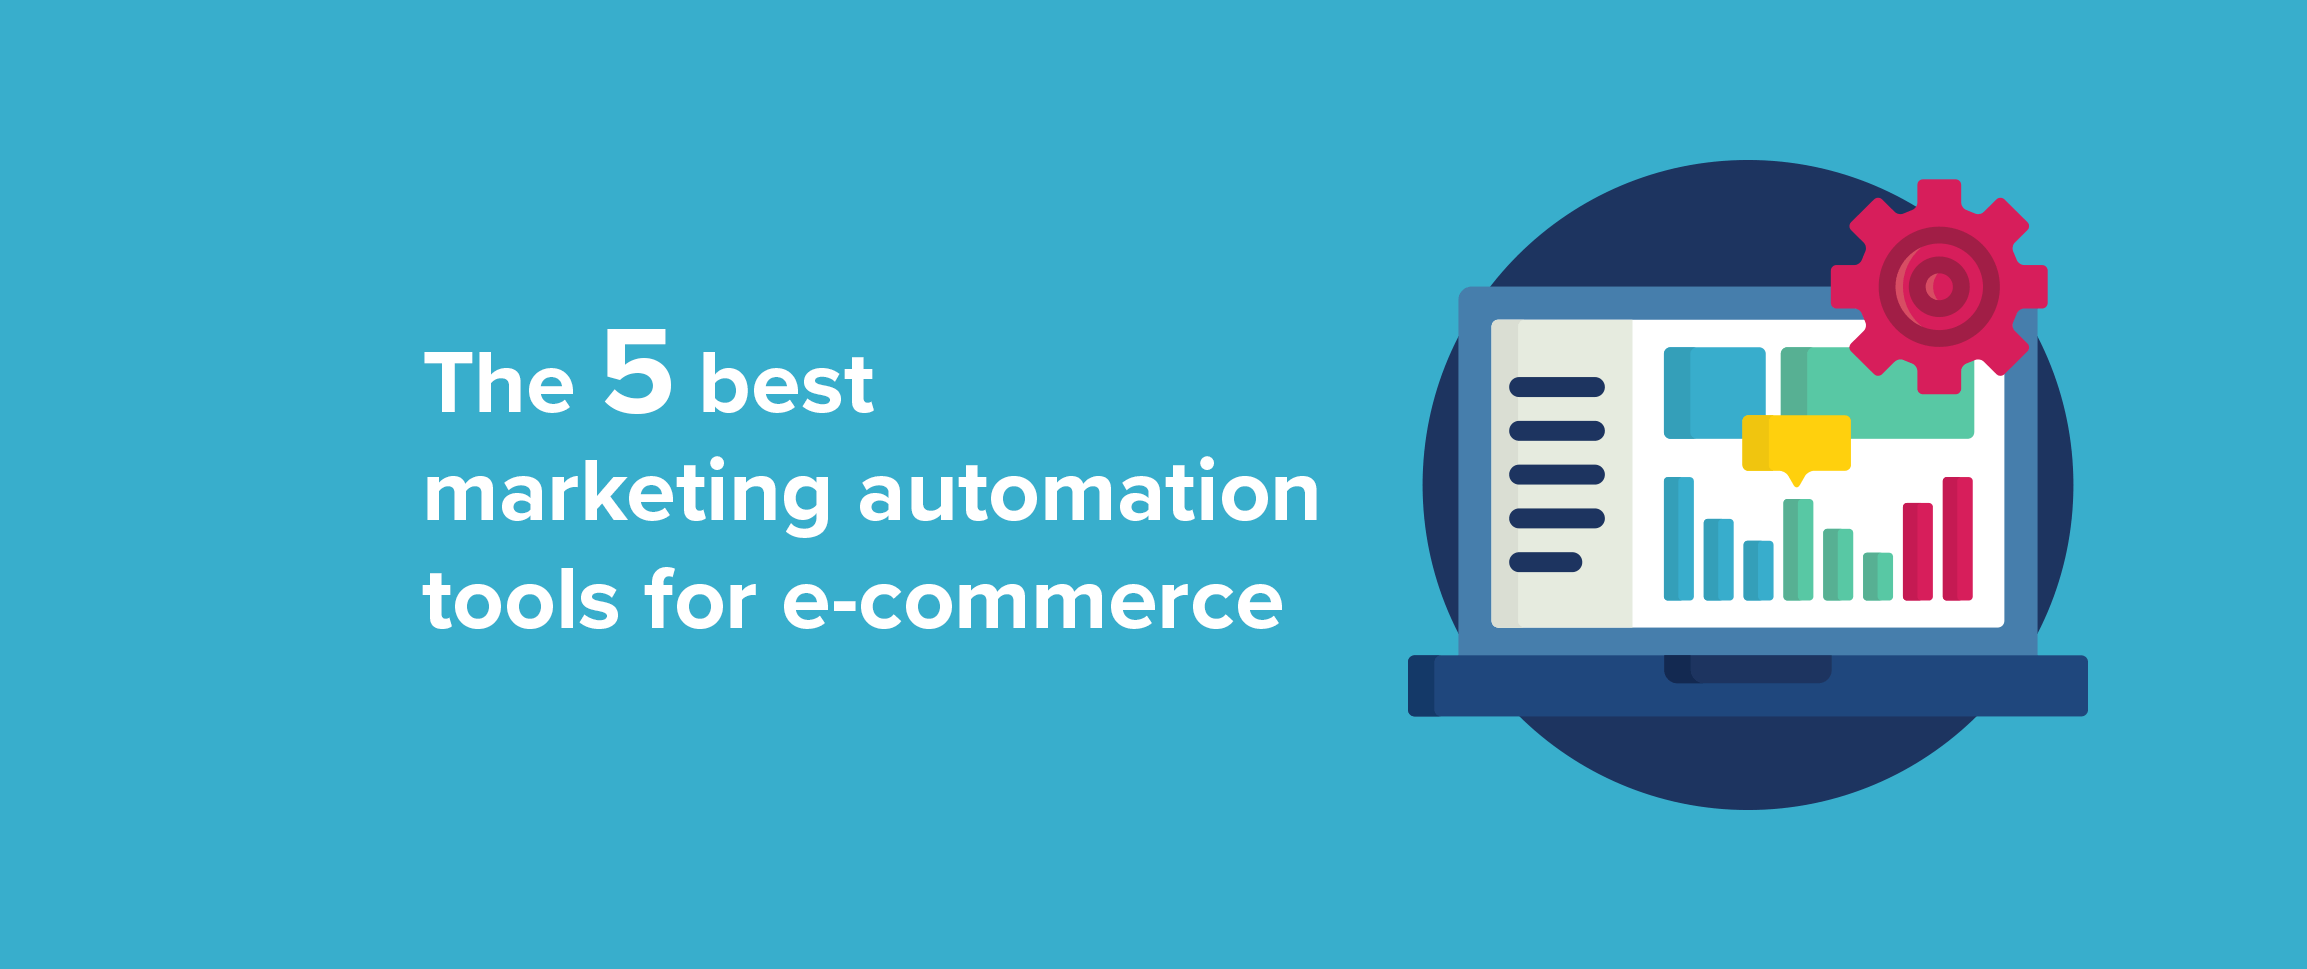 The 5 best marketing automation tools for e-commerce - Yieldify